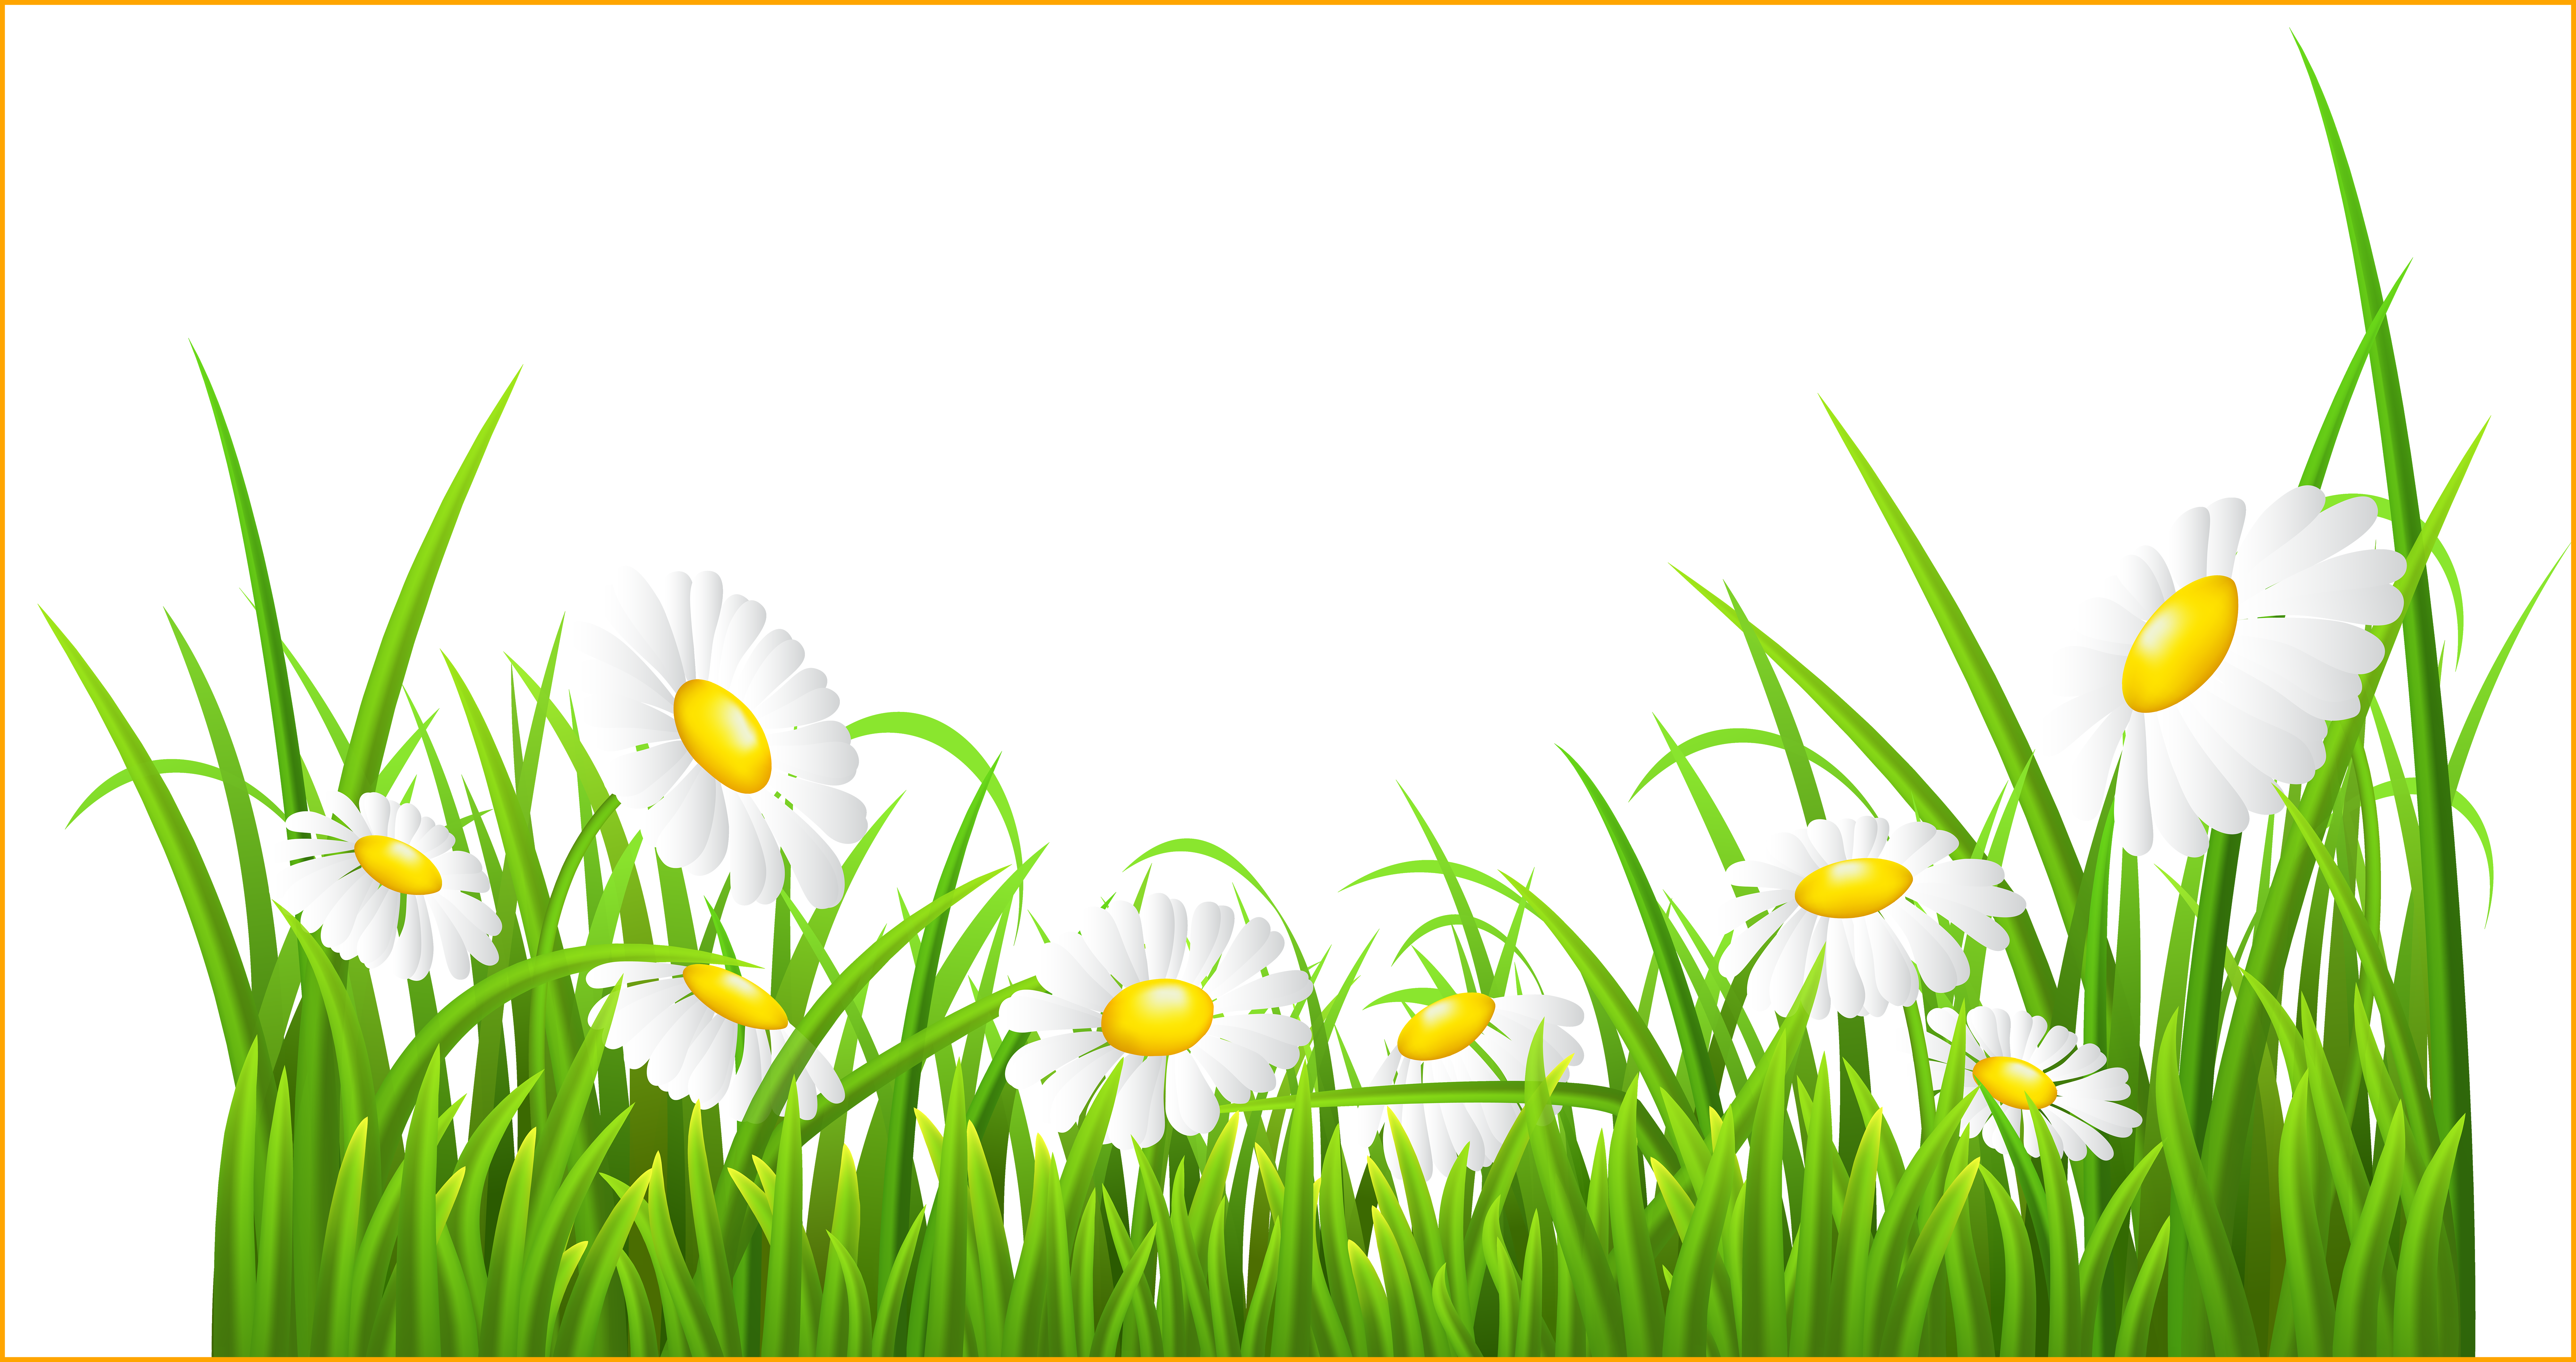 Daisy clipart daisie. Incredible red transparent png